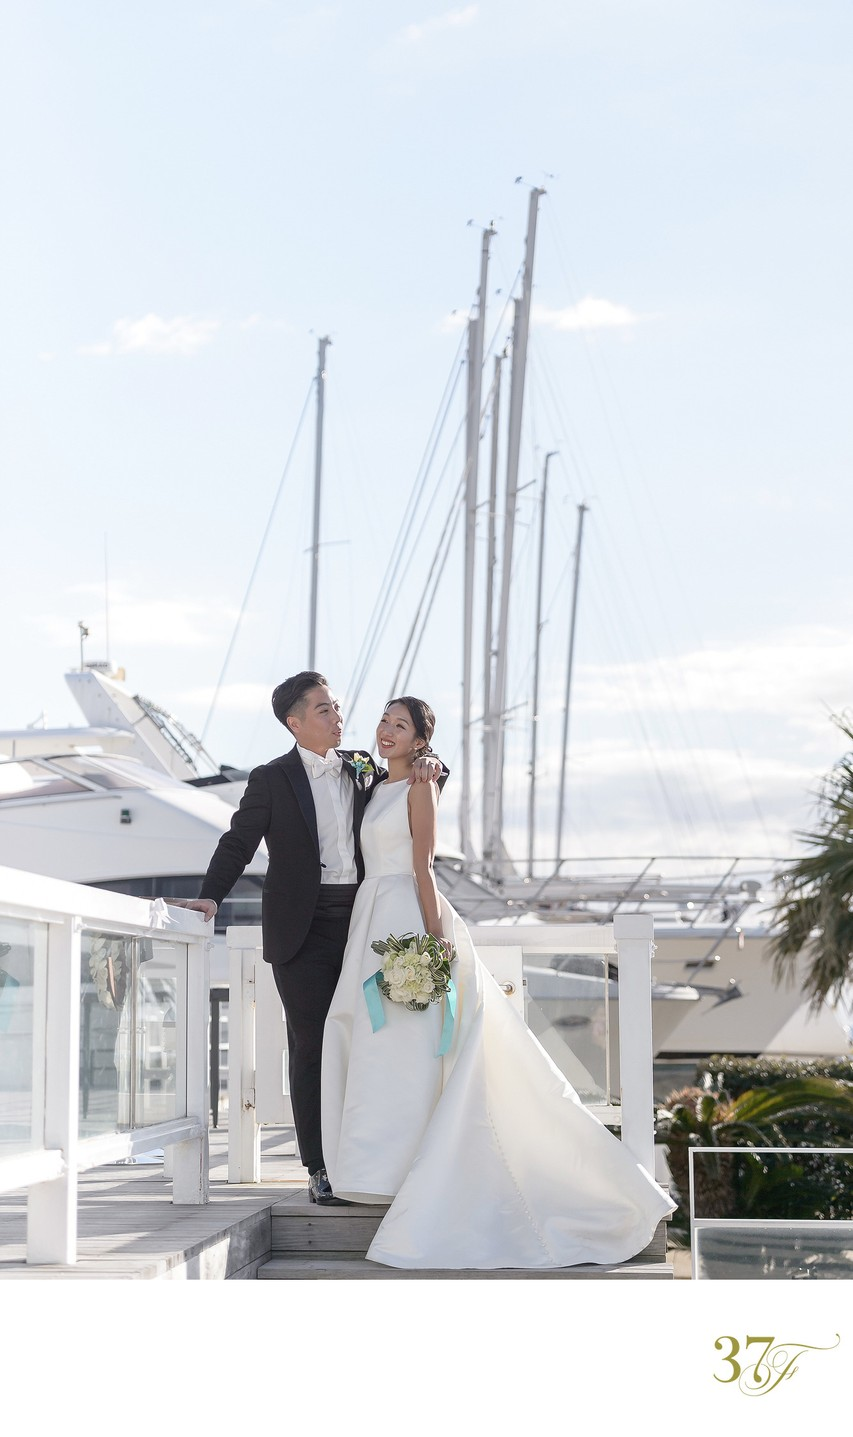 A Beautiful Wedding at Zushi Marina